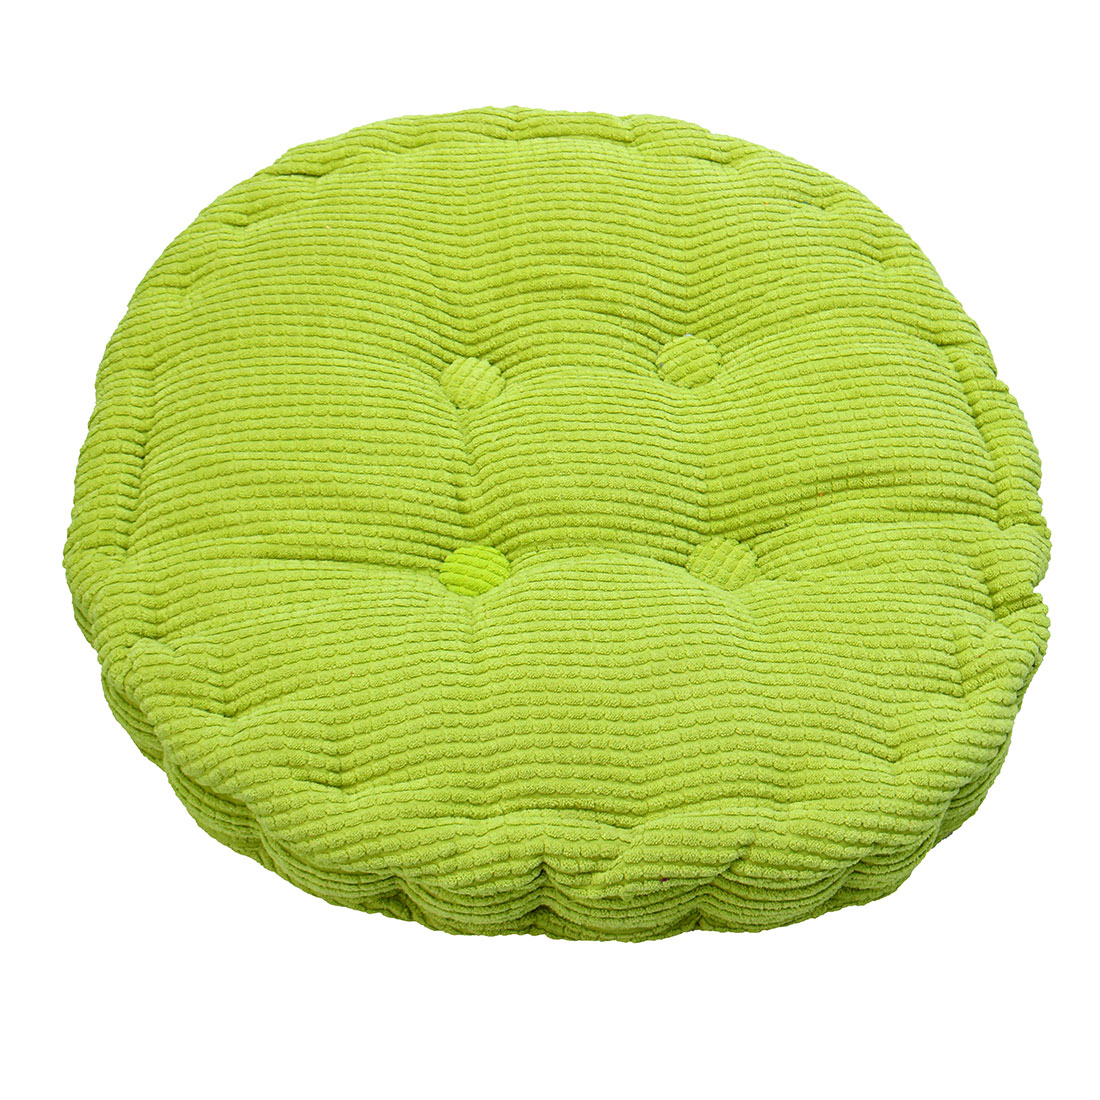 Home Office Corduroy Round Shaped Sofa Floor Chair Seat Cushion Pad Green 40cm Dia